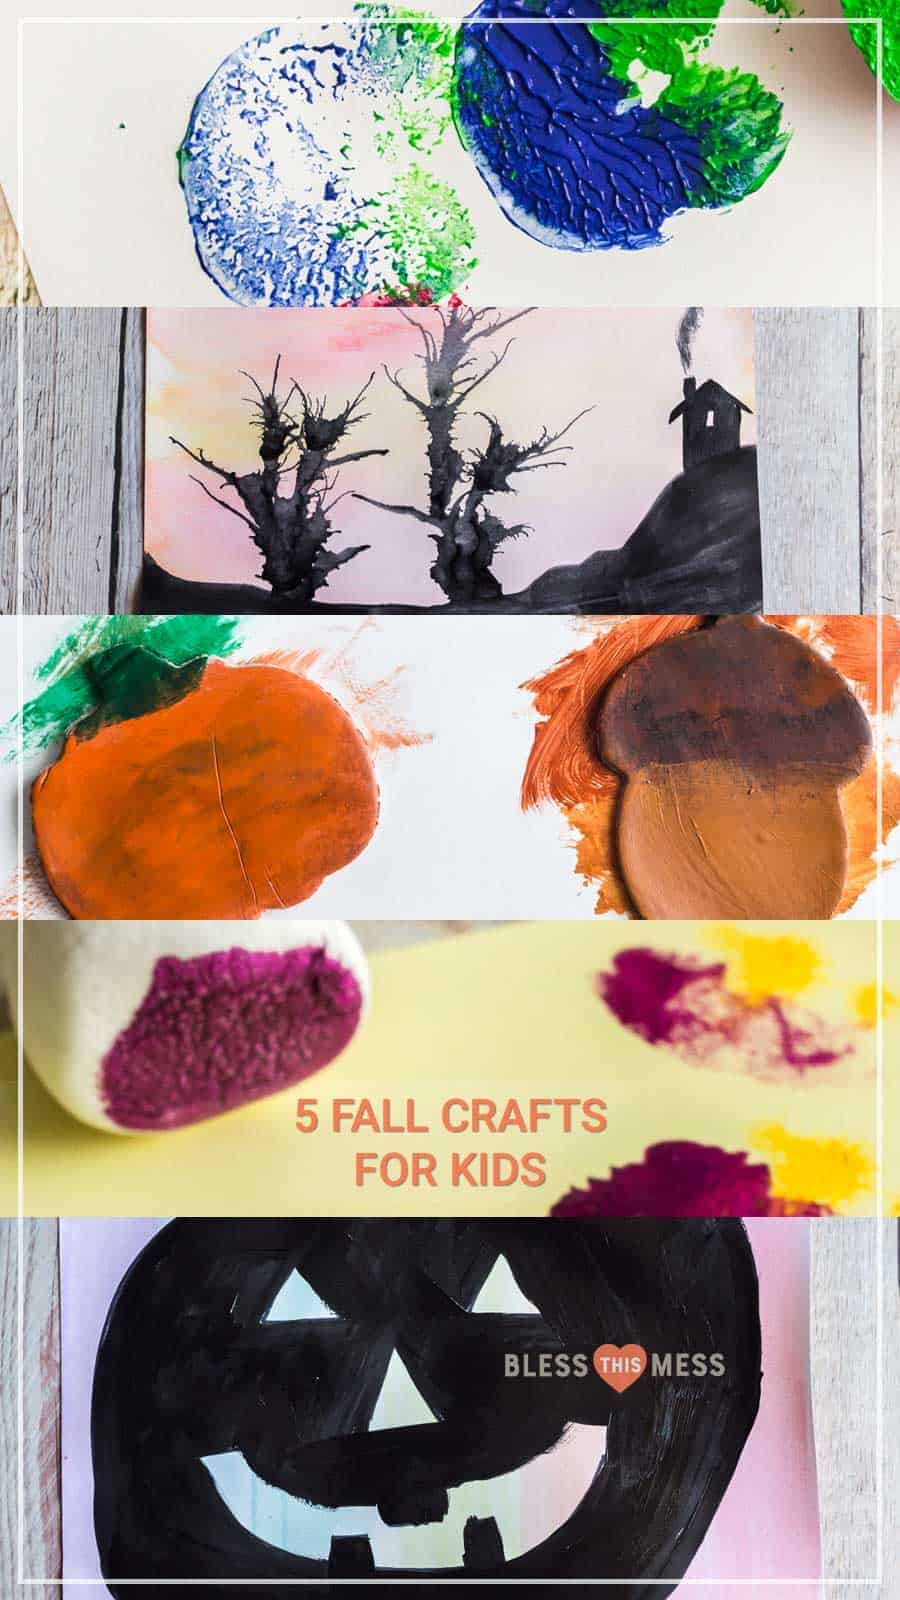 Title Image of 5 Fall Crafts for Kids